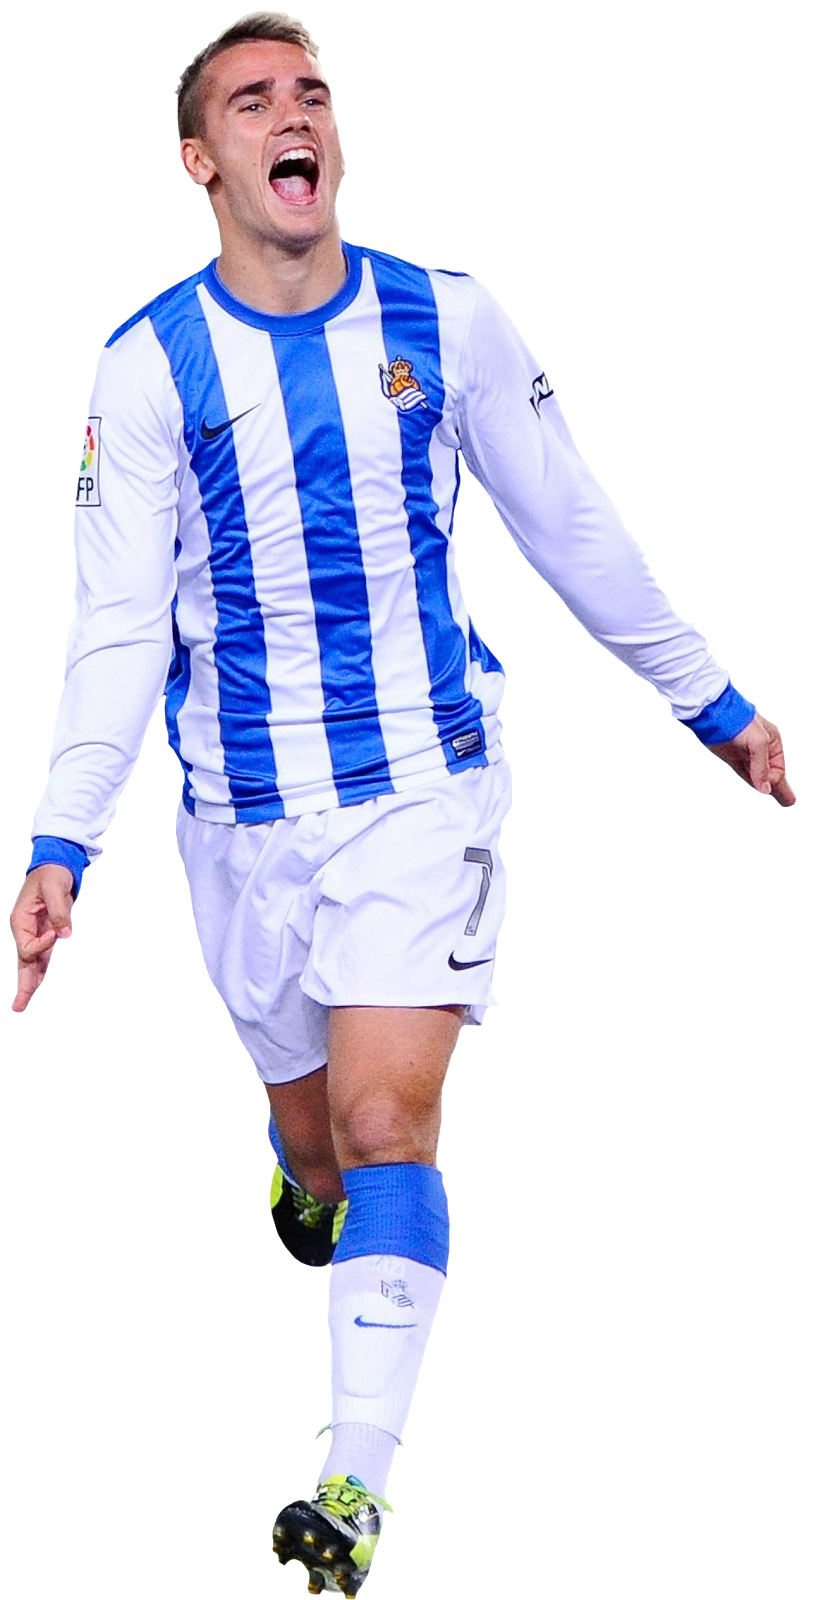 Are you searching for transparent background png images? TIME FOR RENDERS: Antoine Griezmann